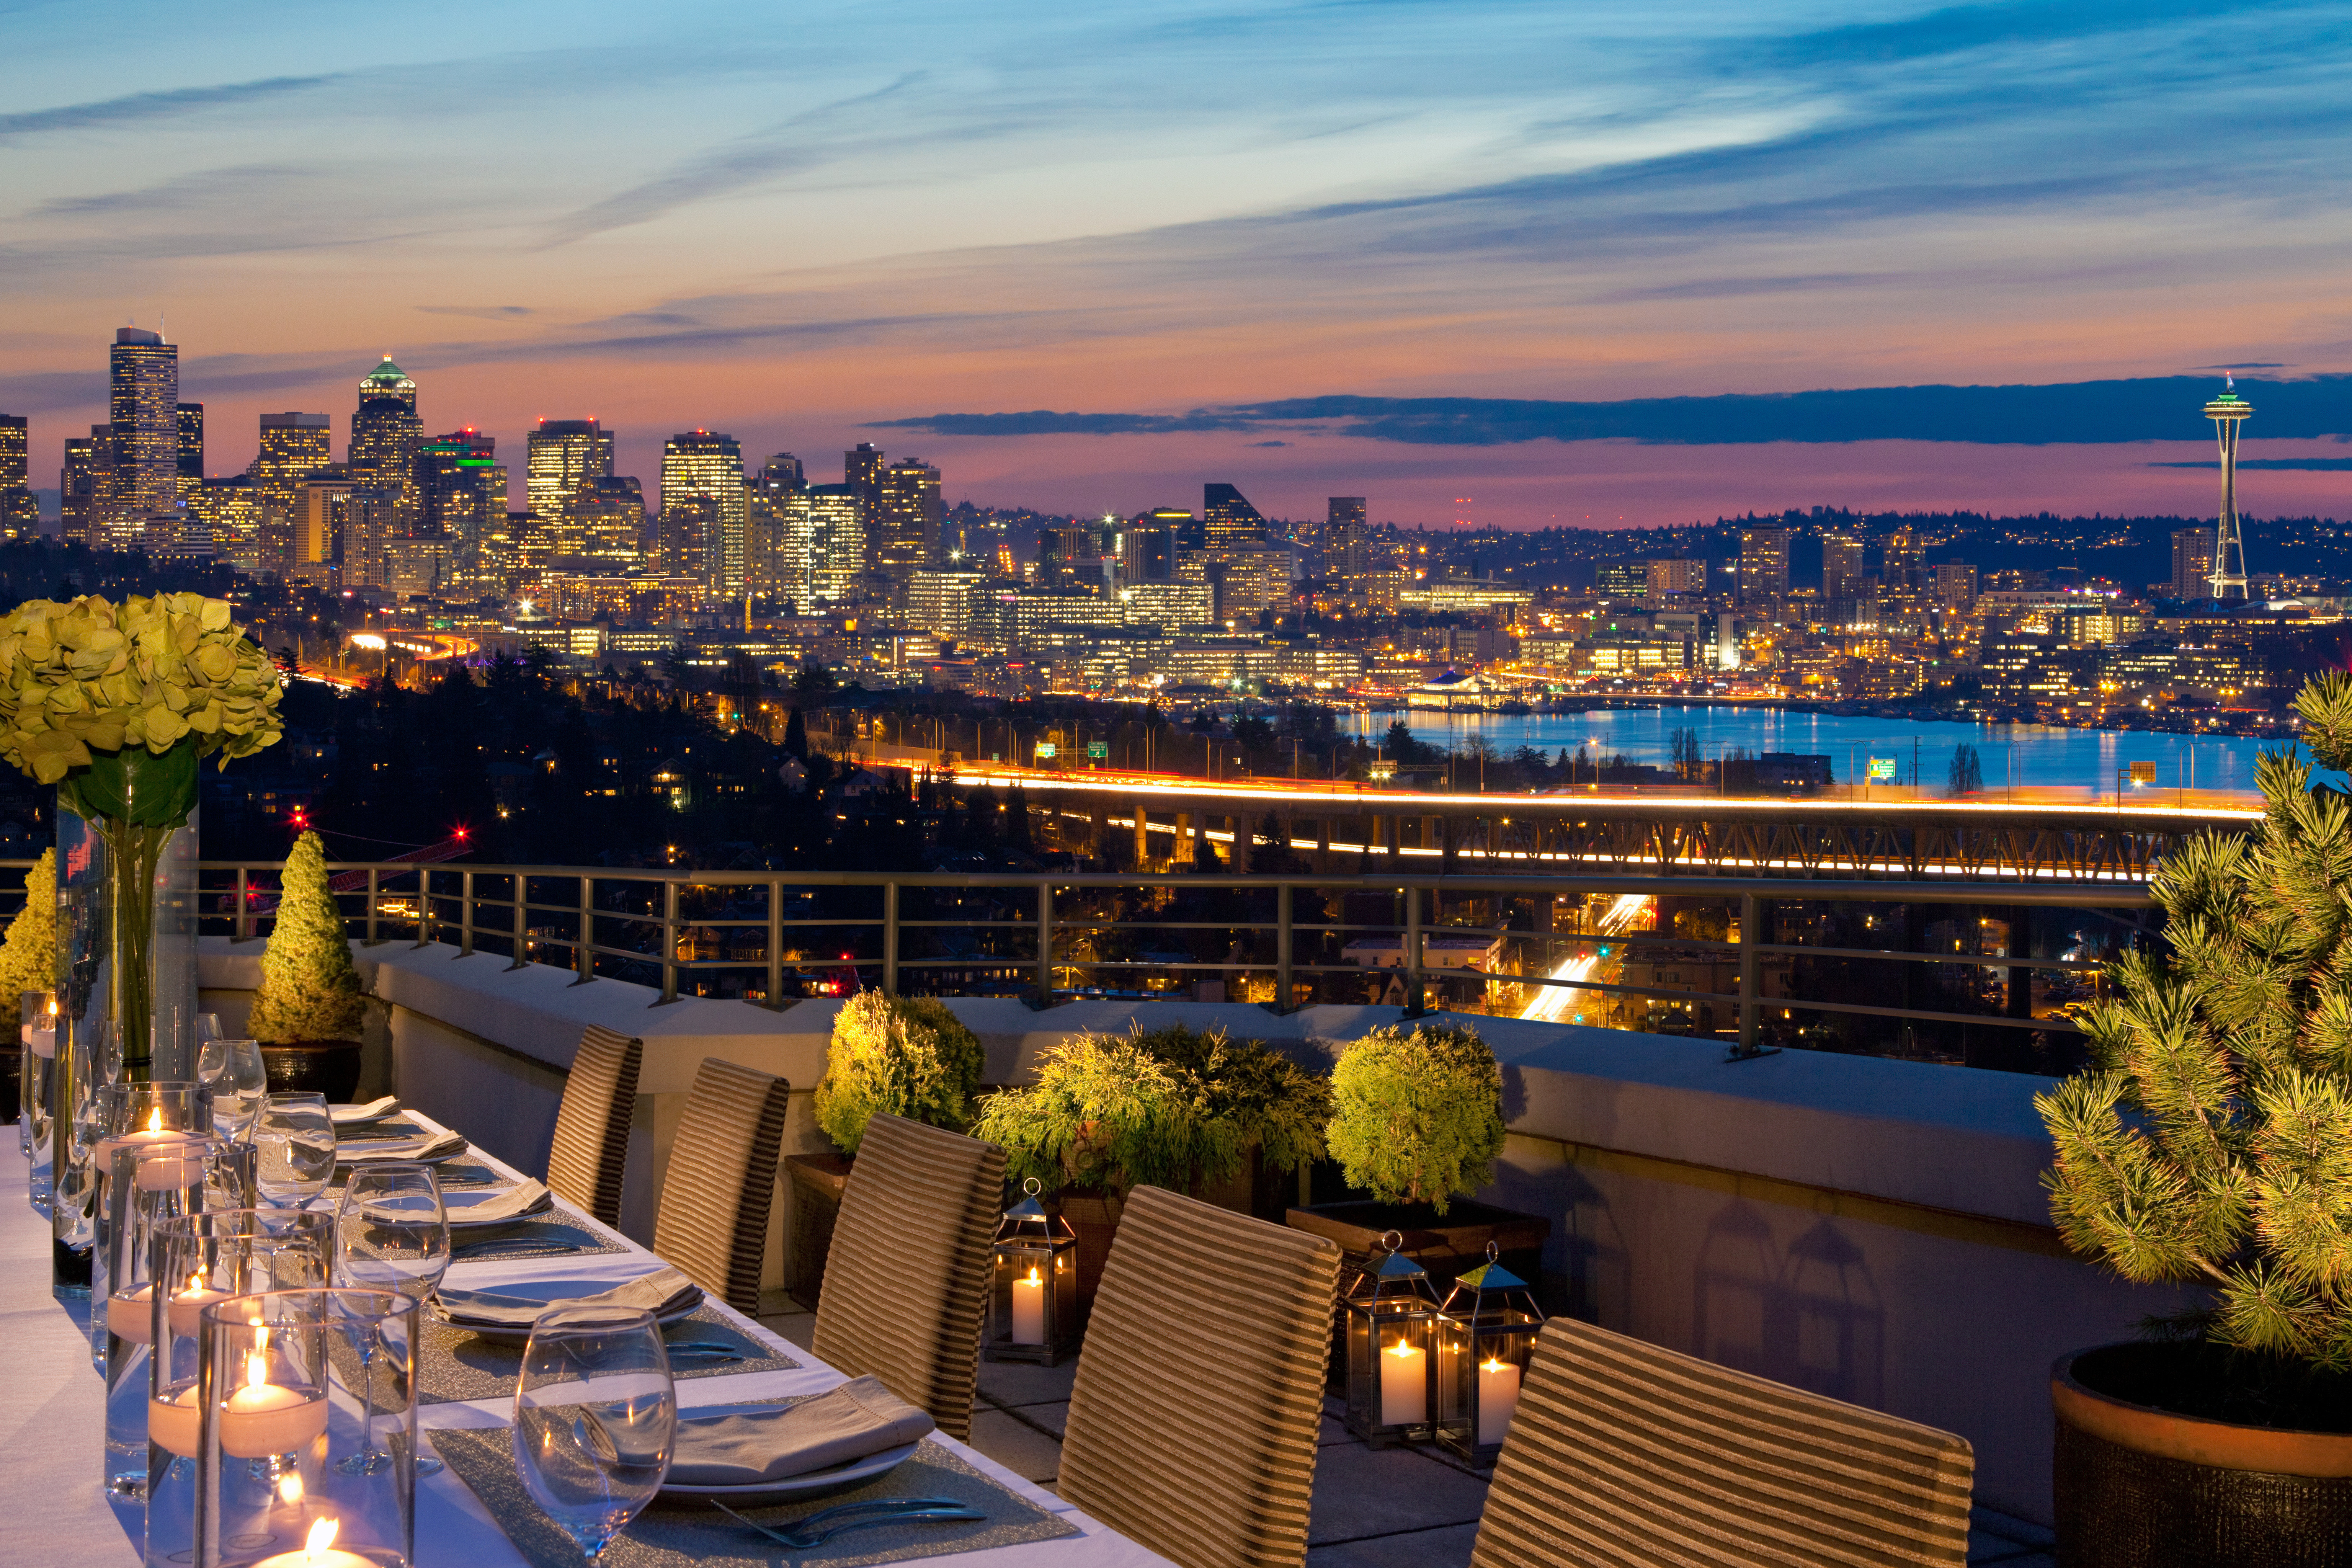 City Dining Drink Eat Historic Lounge Modern Rooftop Scenic views sky overlooking cityscape evening skyline Downtown dusk